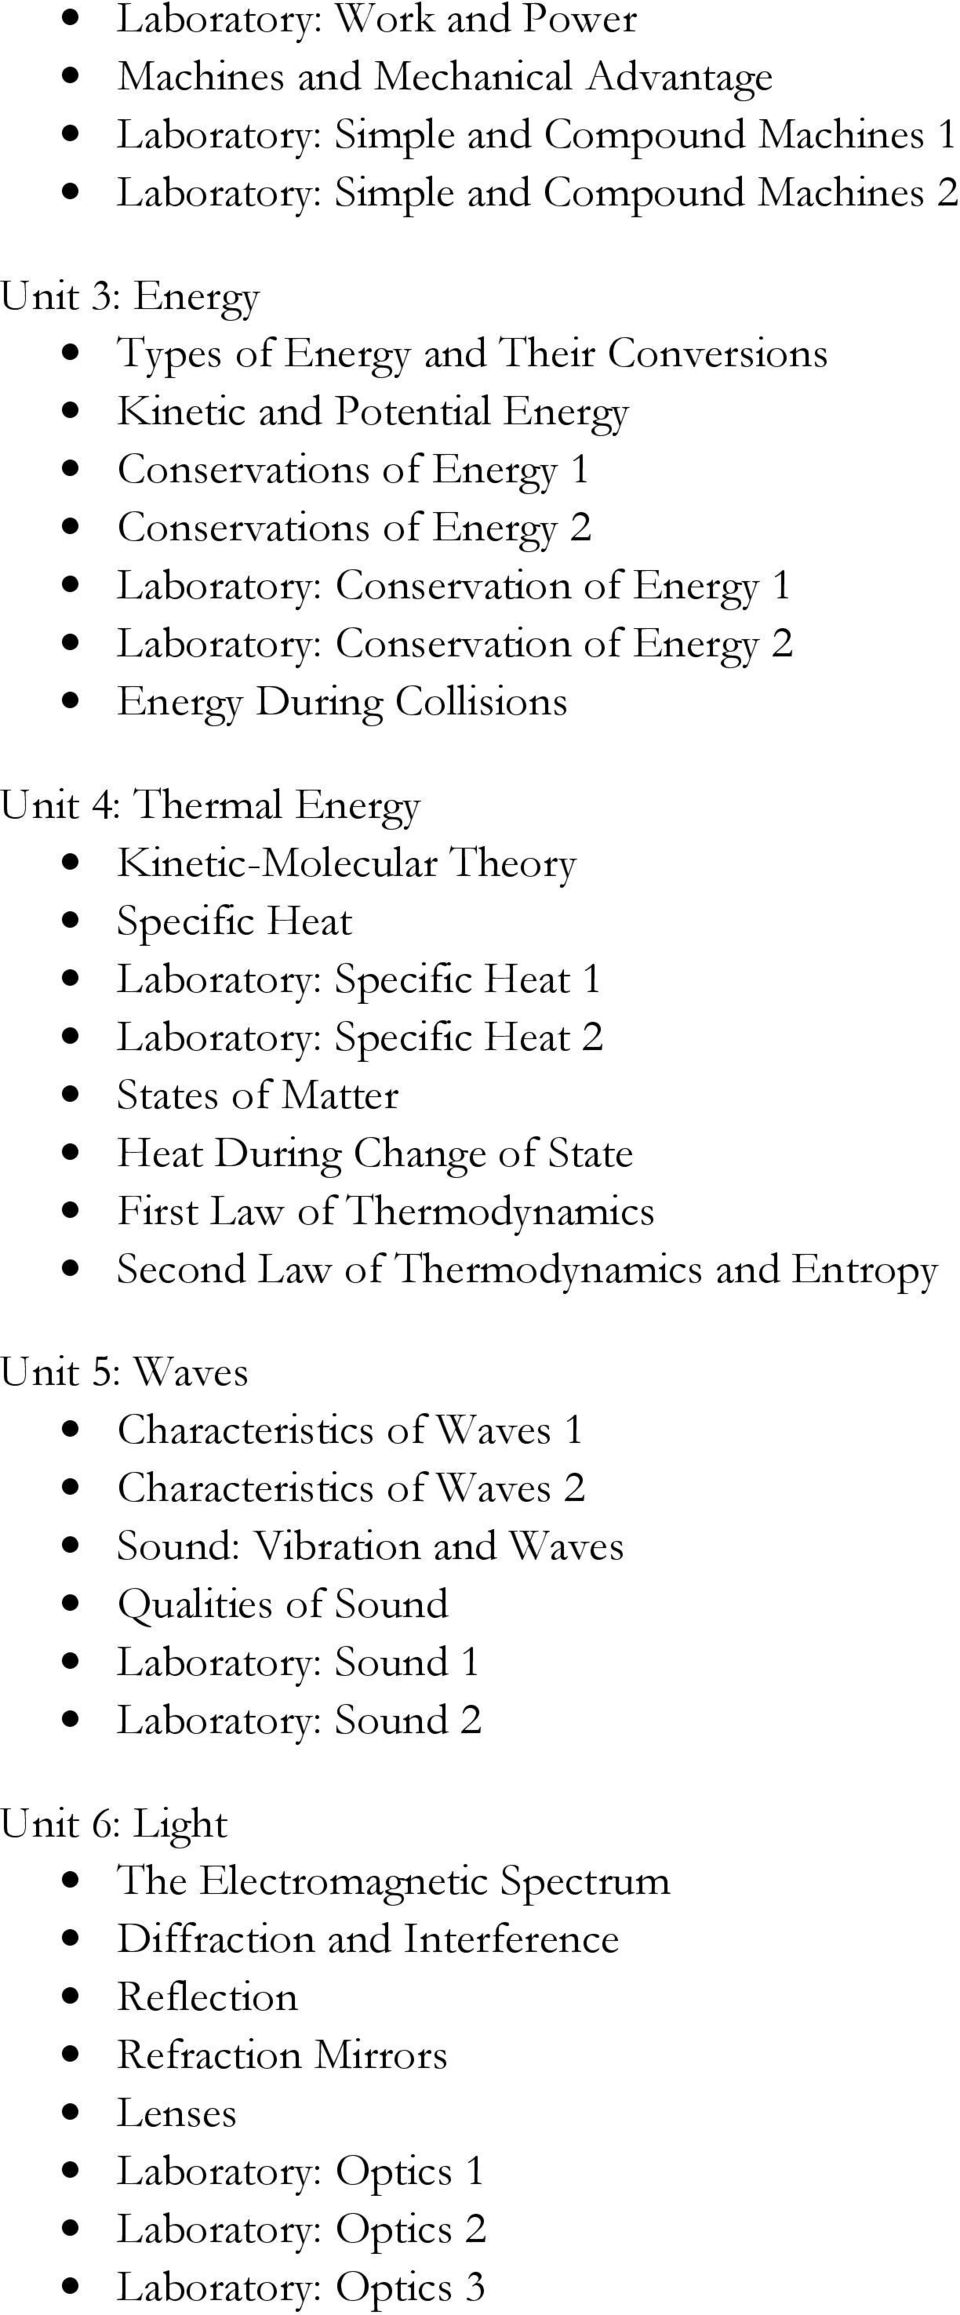 Energy Kinetic-Molecular Theory Specific Heat Laboratory: Specific Heat 1 Laboratory: Specific Heat 2 States of Matter Heat During Change of State First Law of Thermodynamics Second Law of